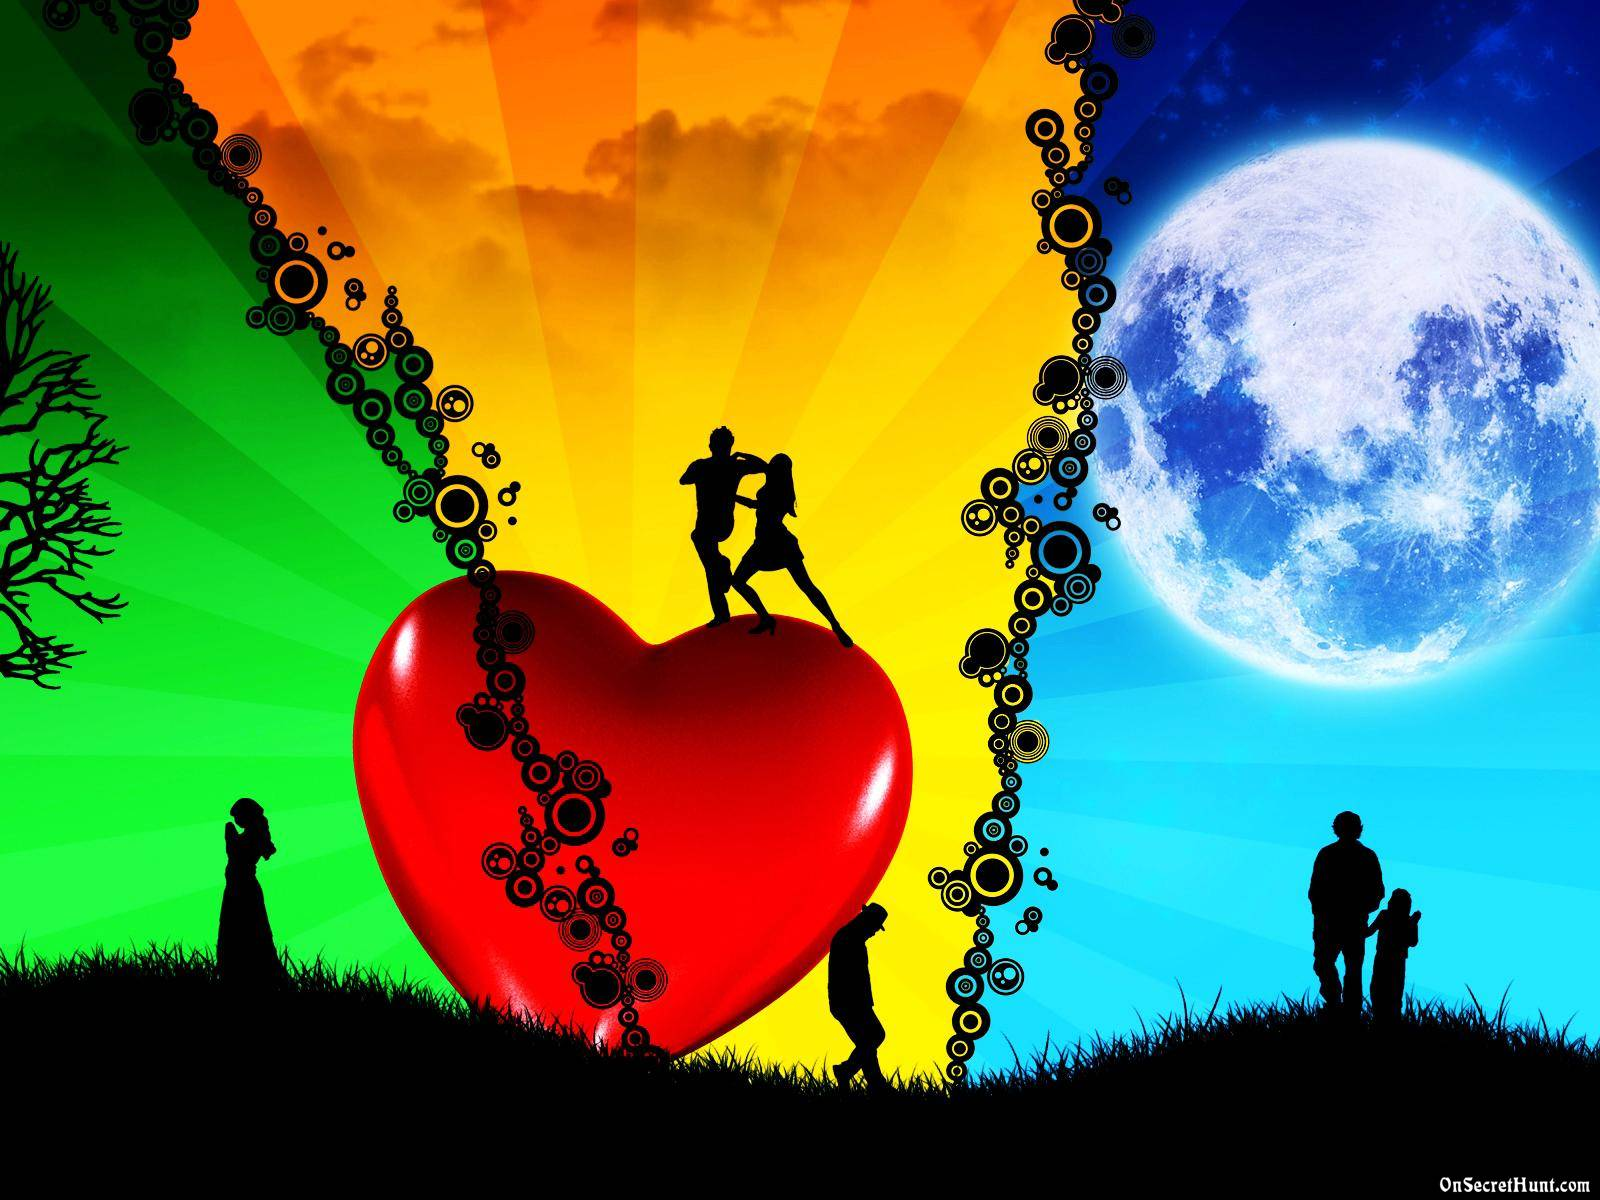 cute Love Wallpaper In 3d : Love Wallpapers 3D - Wallpaper cave